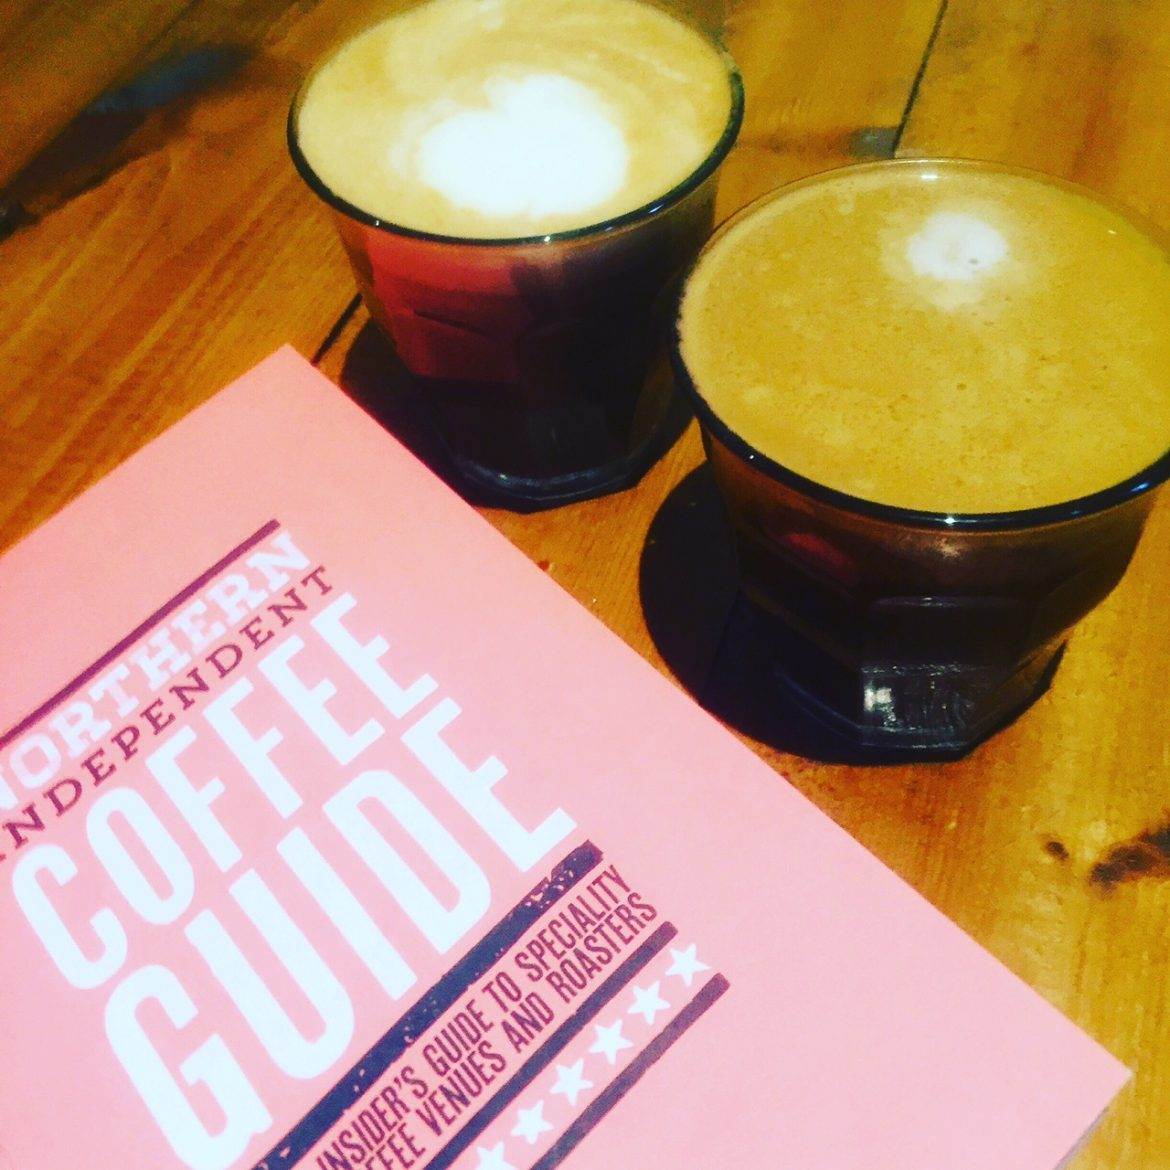 Northern-Niche-Independent-Coffee-Guide